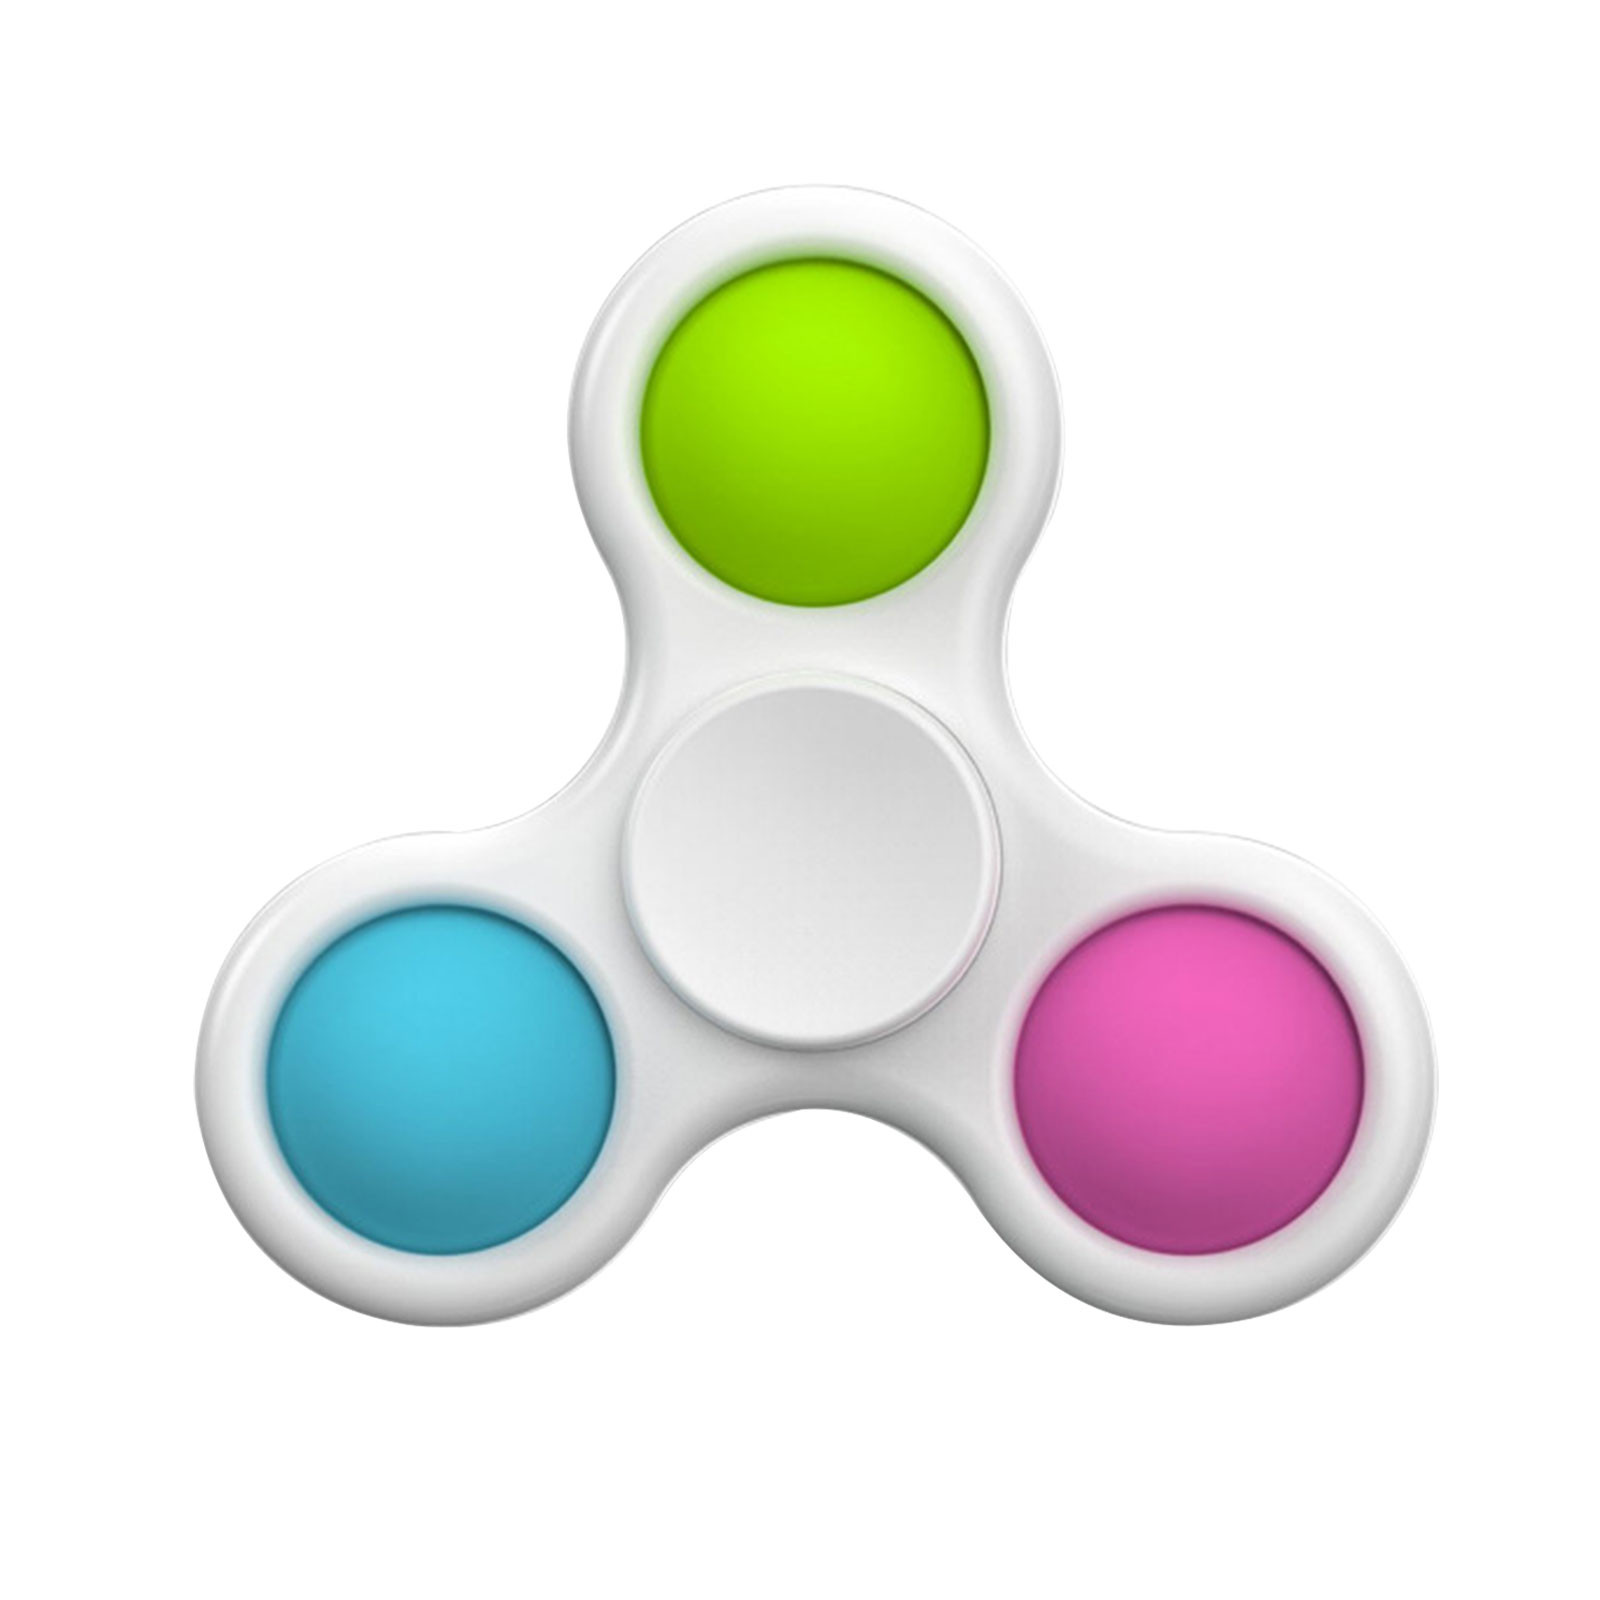 Fidget-Toy Popit Mini Dimple Adult Children Toy-Pressure Reliever Creative Board Controller img4